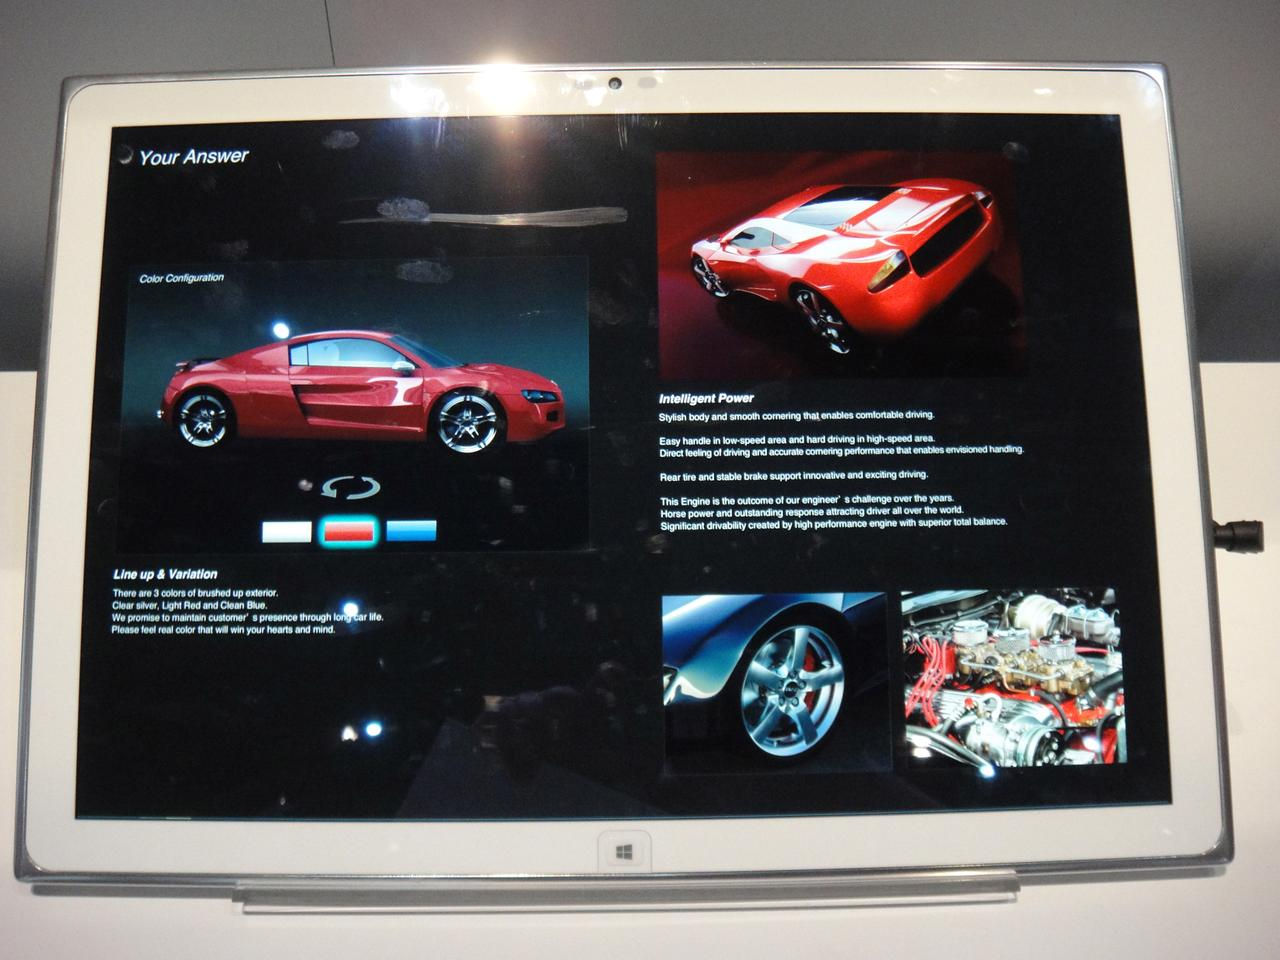 The tablet uses a 1.8 Ghz Intel Corei5 processor to smoothly run applications on Windows 8 Pro, including Adobe Photoshop